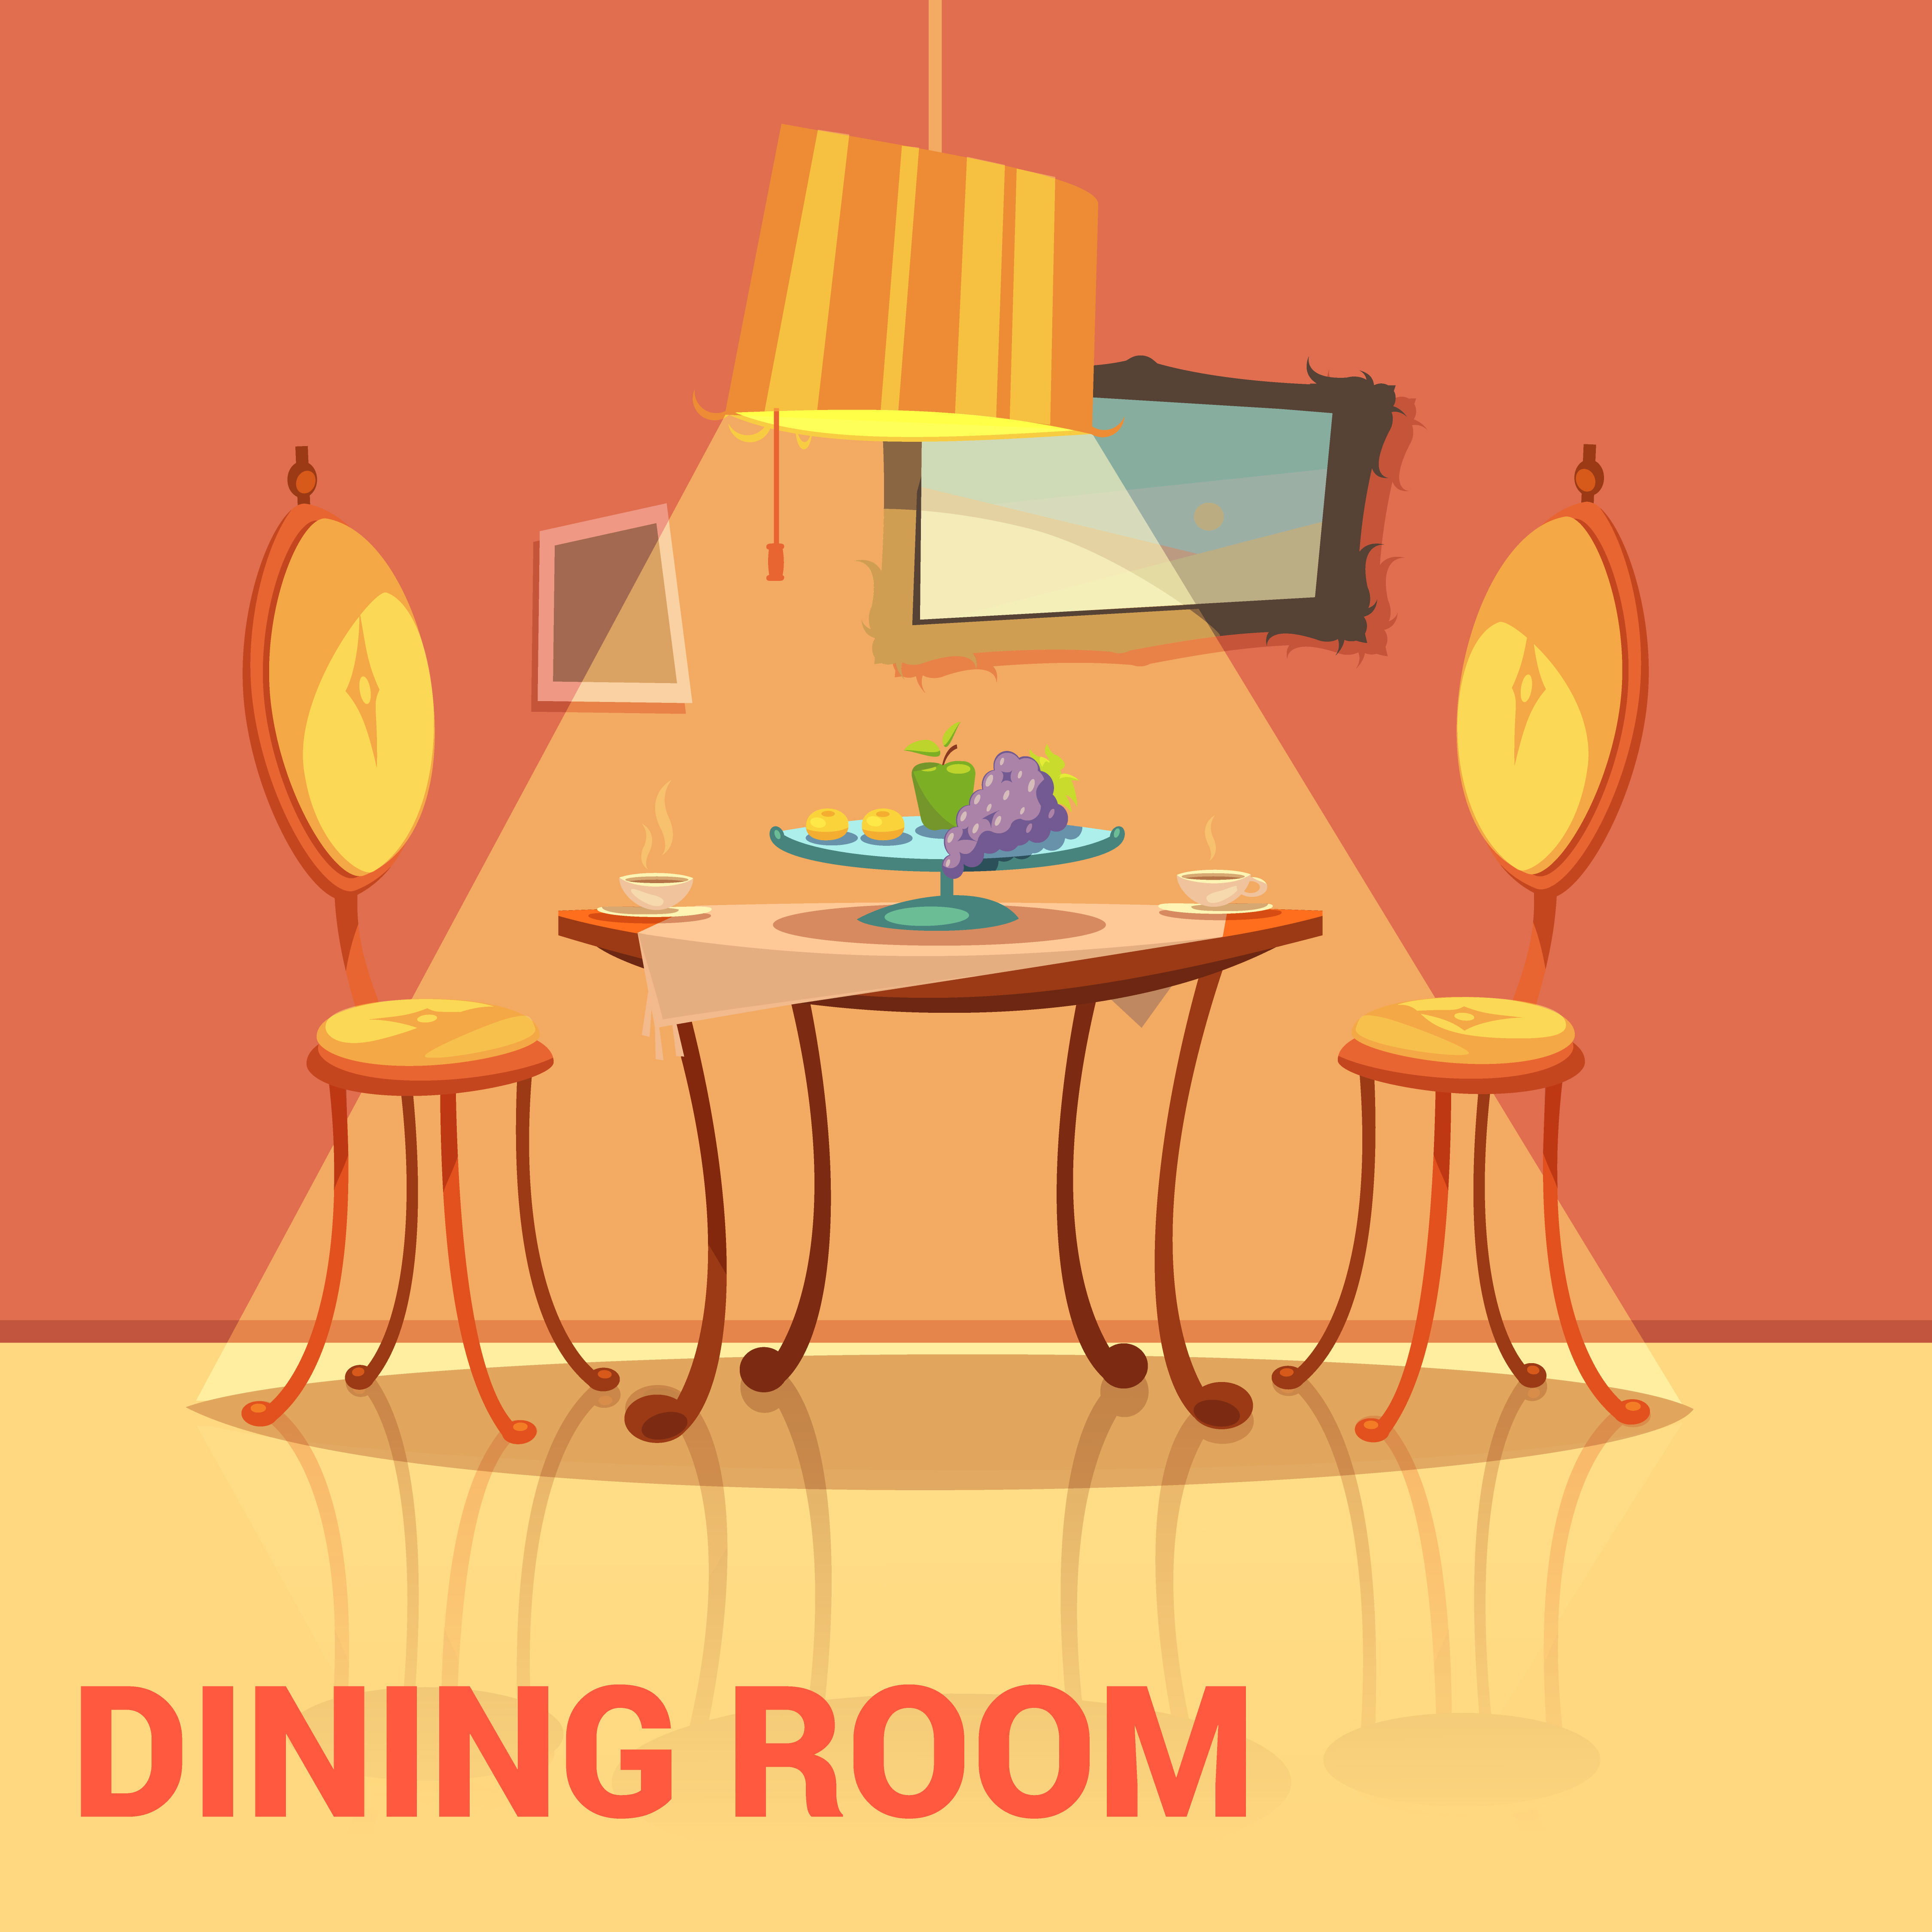 Cartoon Dining Room: Download Free Vector Art, Stock